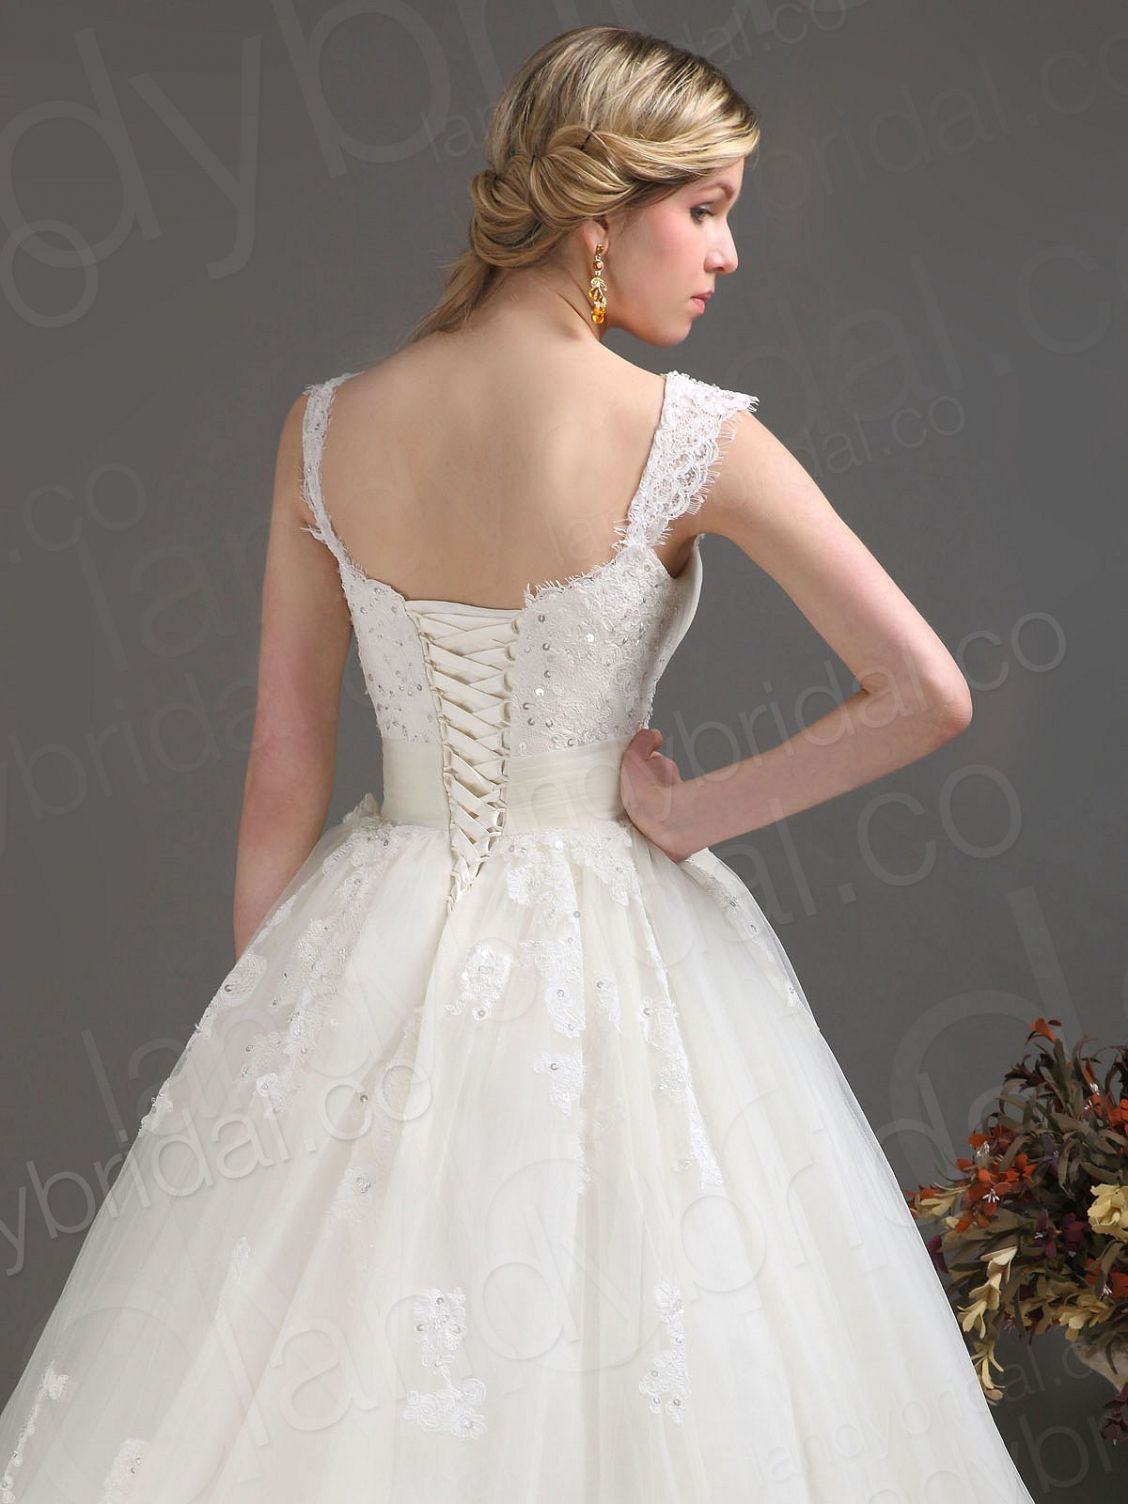 Corset for wedding dress dressy dresses for weddings check more at